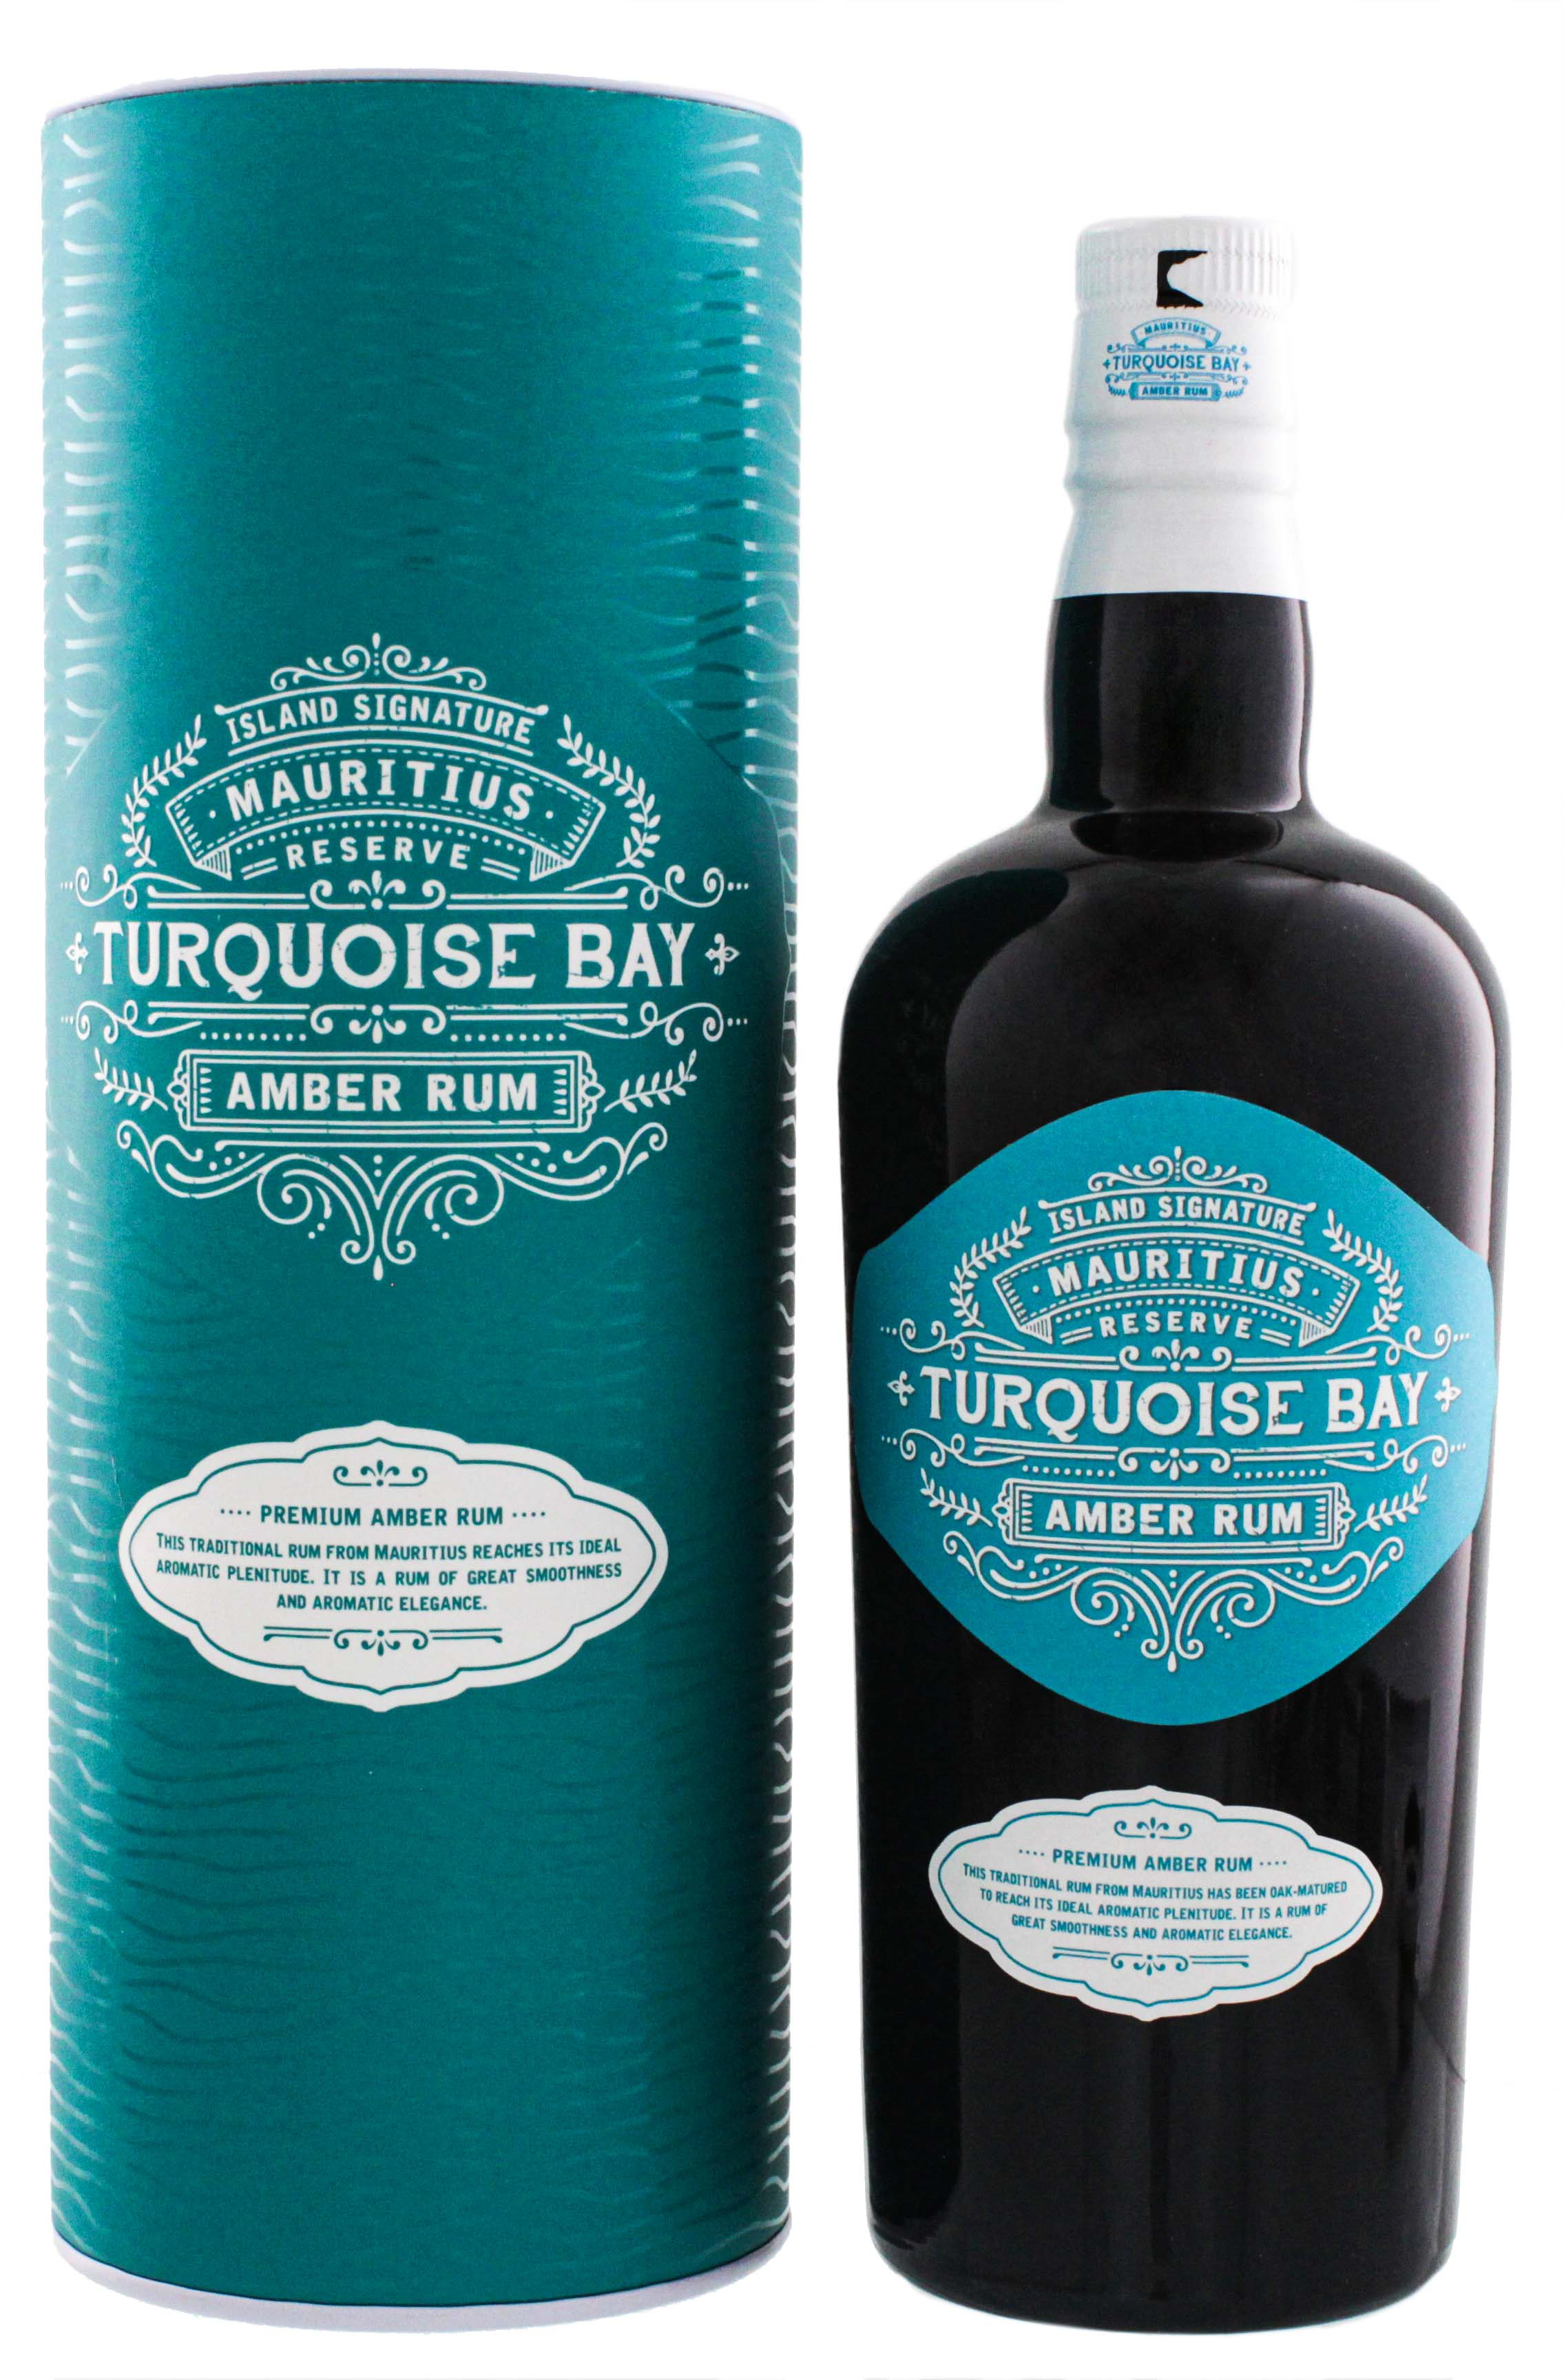 Island Signature Collection Turquoise Bay Amber Rum 0,7L